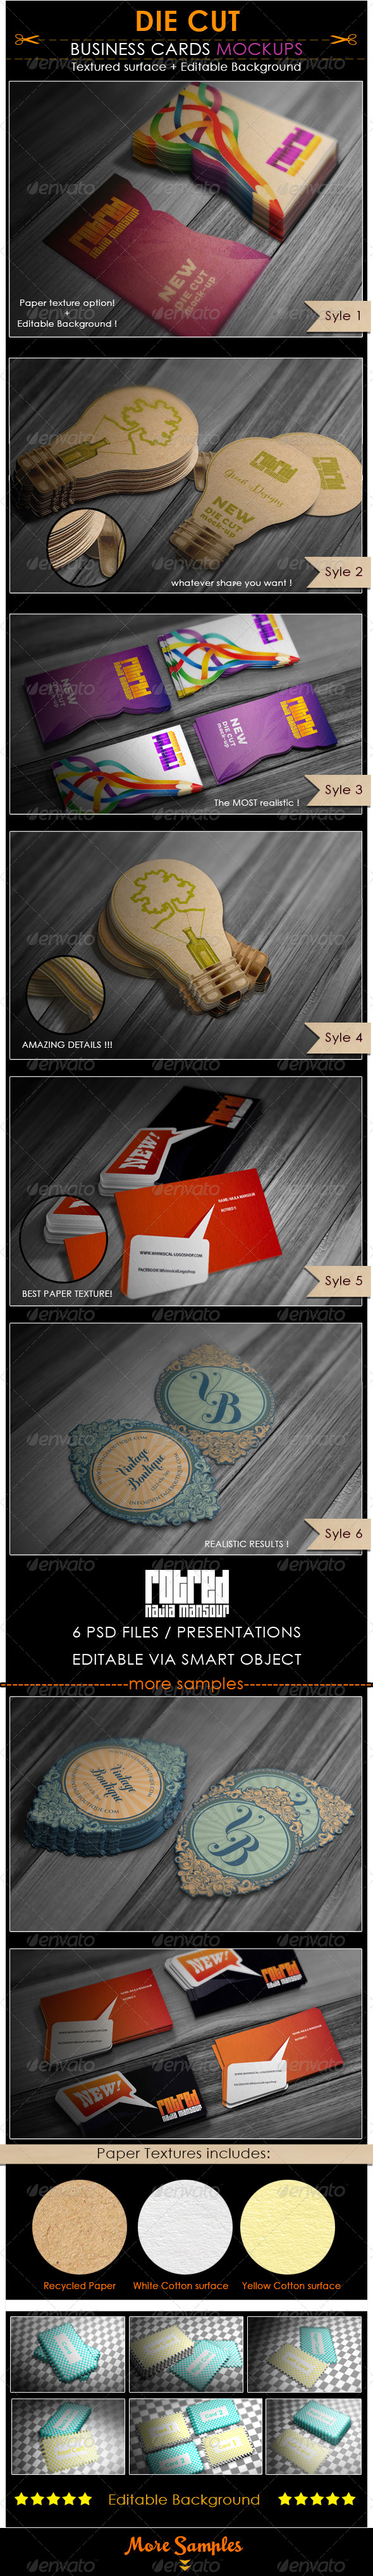 GraphicRiver Die Cut Business Cards Mockup 6908234